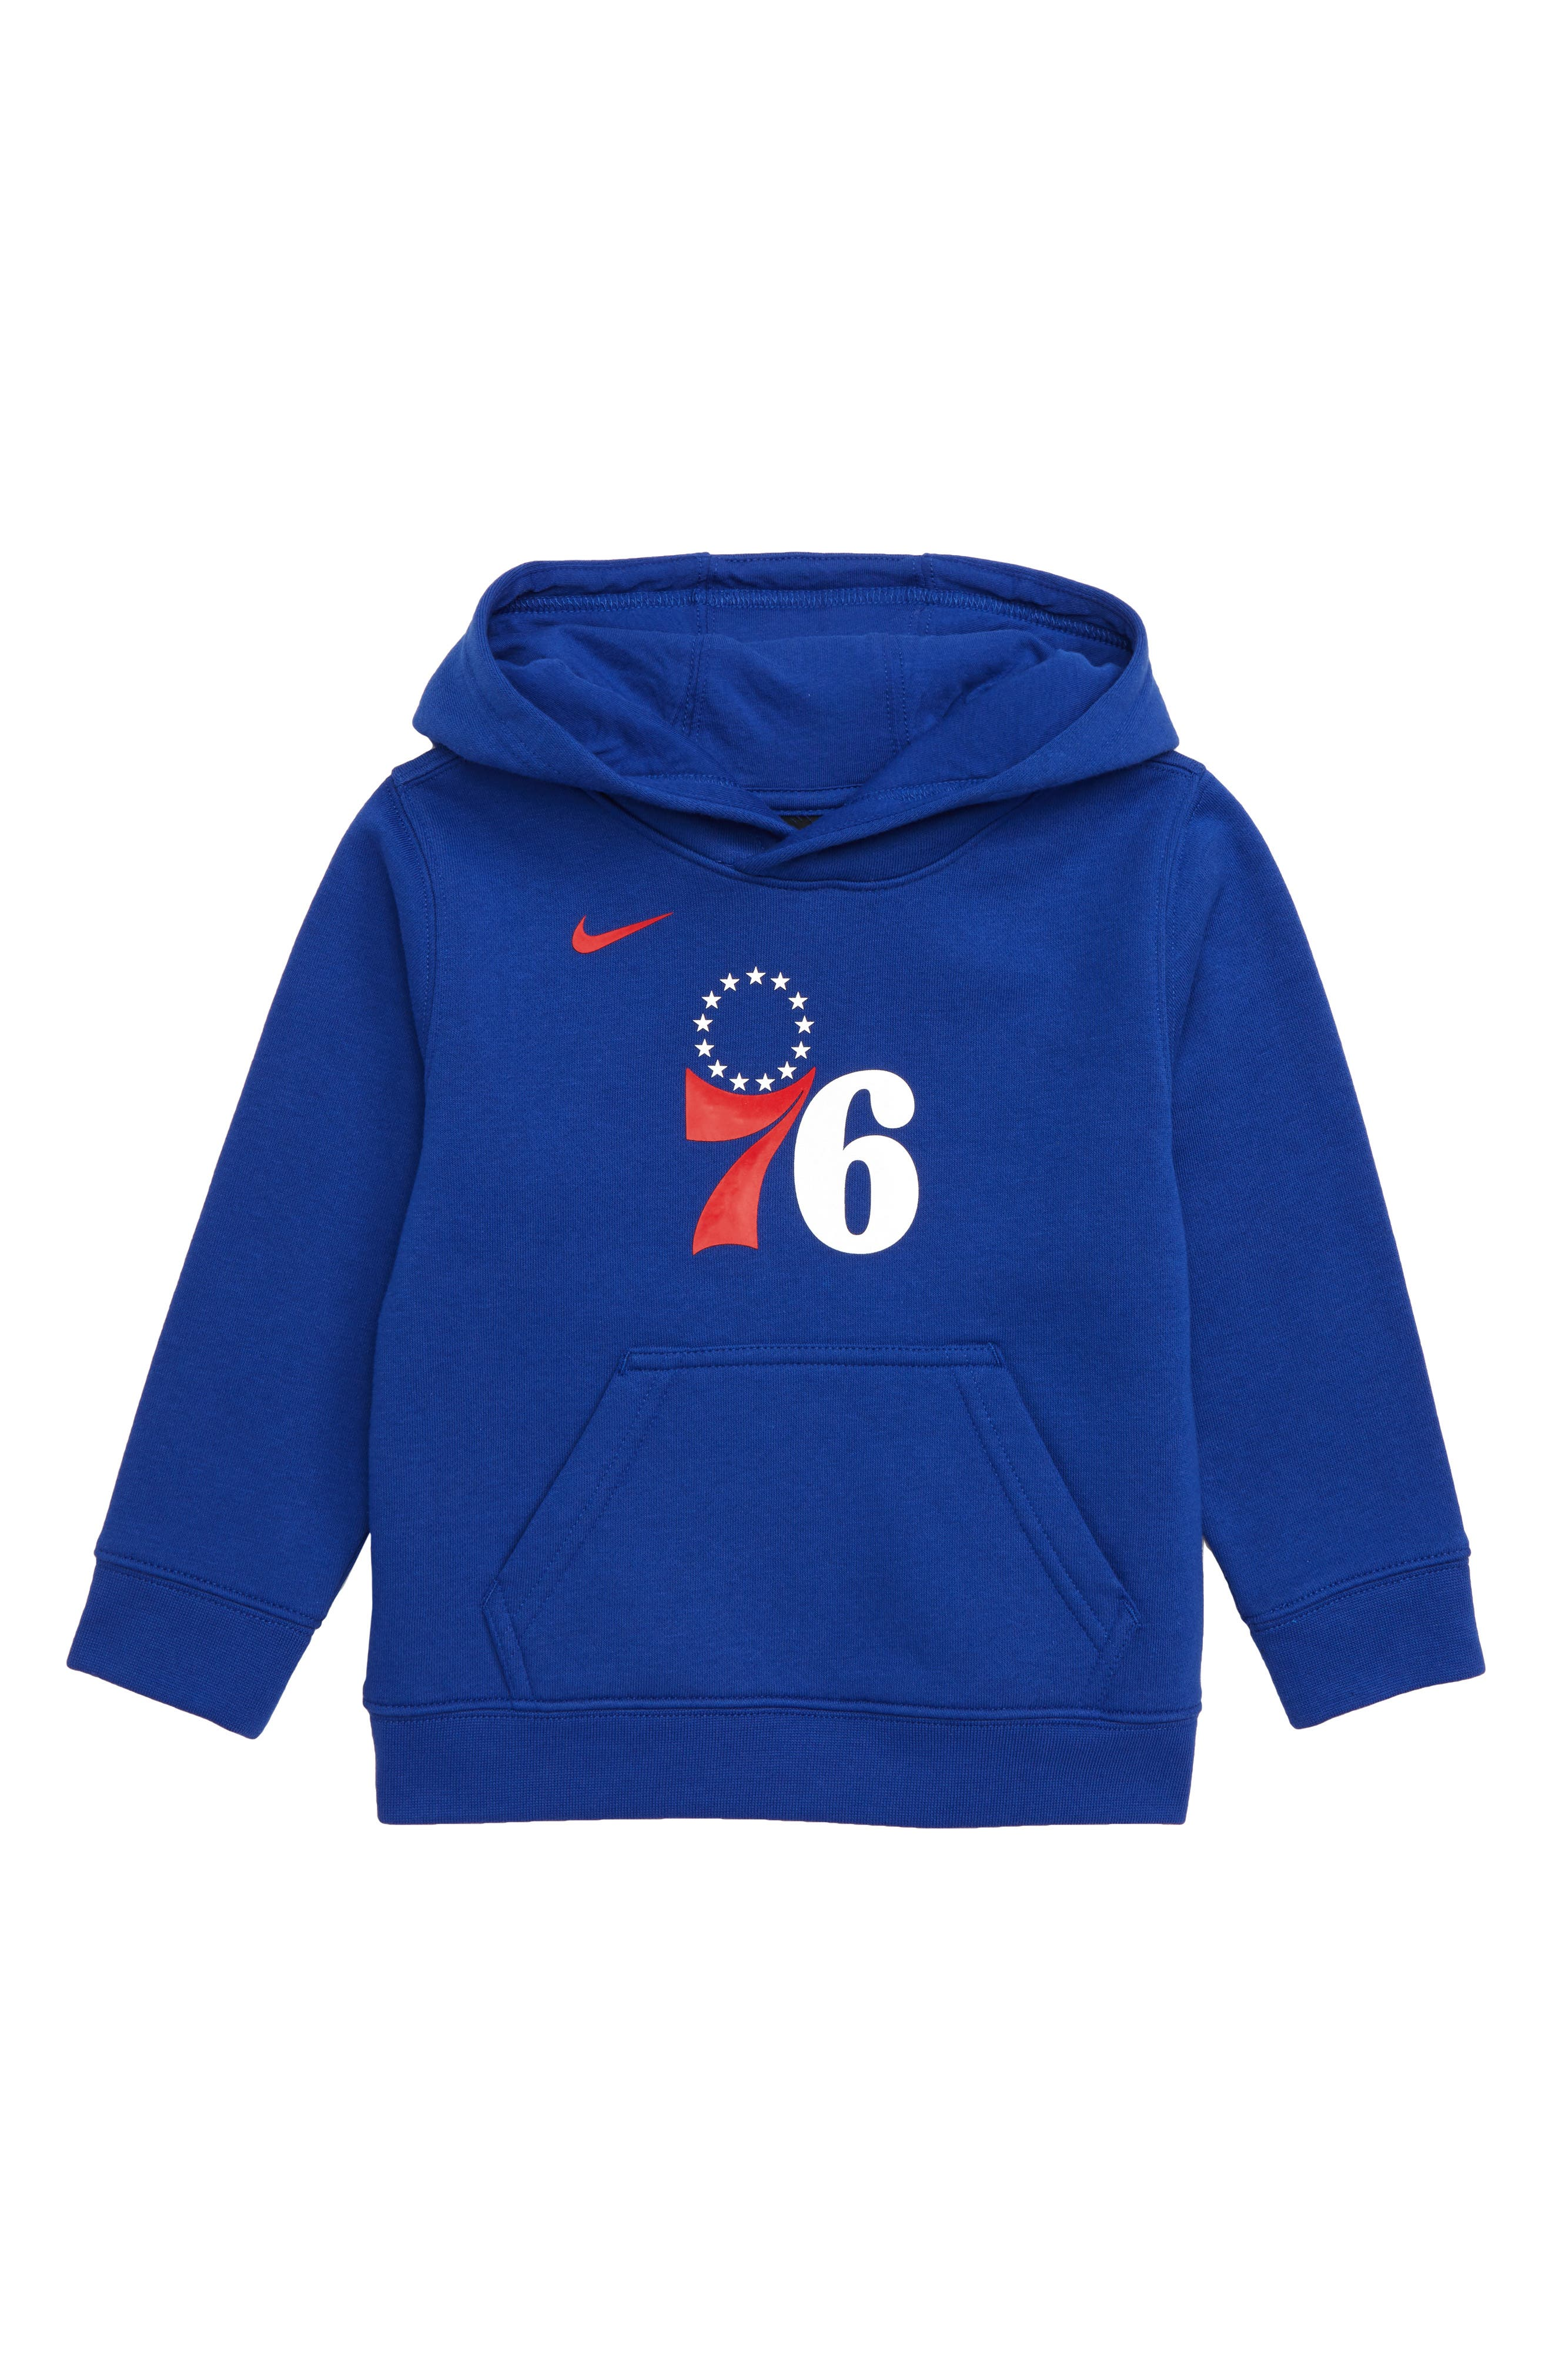 Philadelphia 76ers Hoodie,                             Main thumbnail 1, color,                             RUSH BLUE